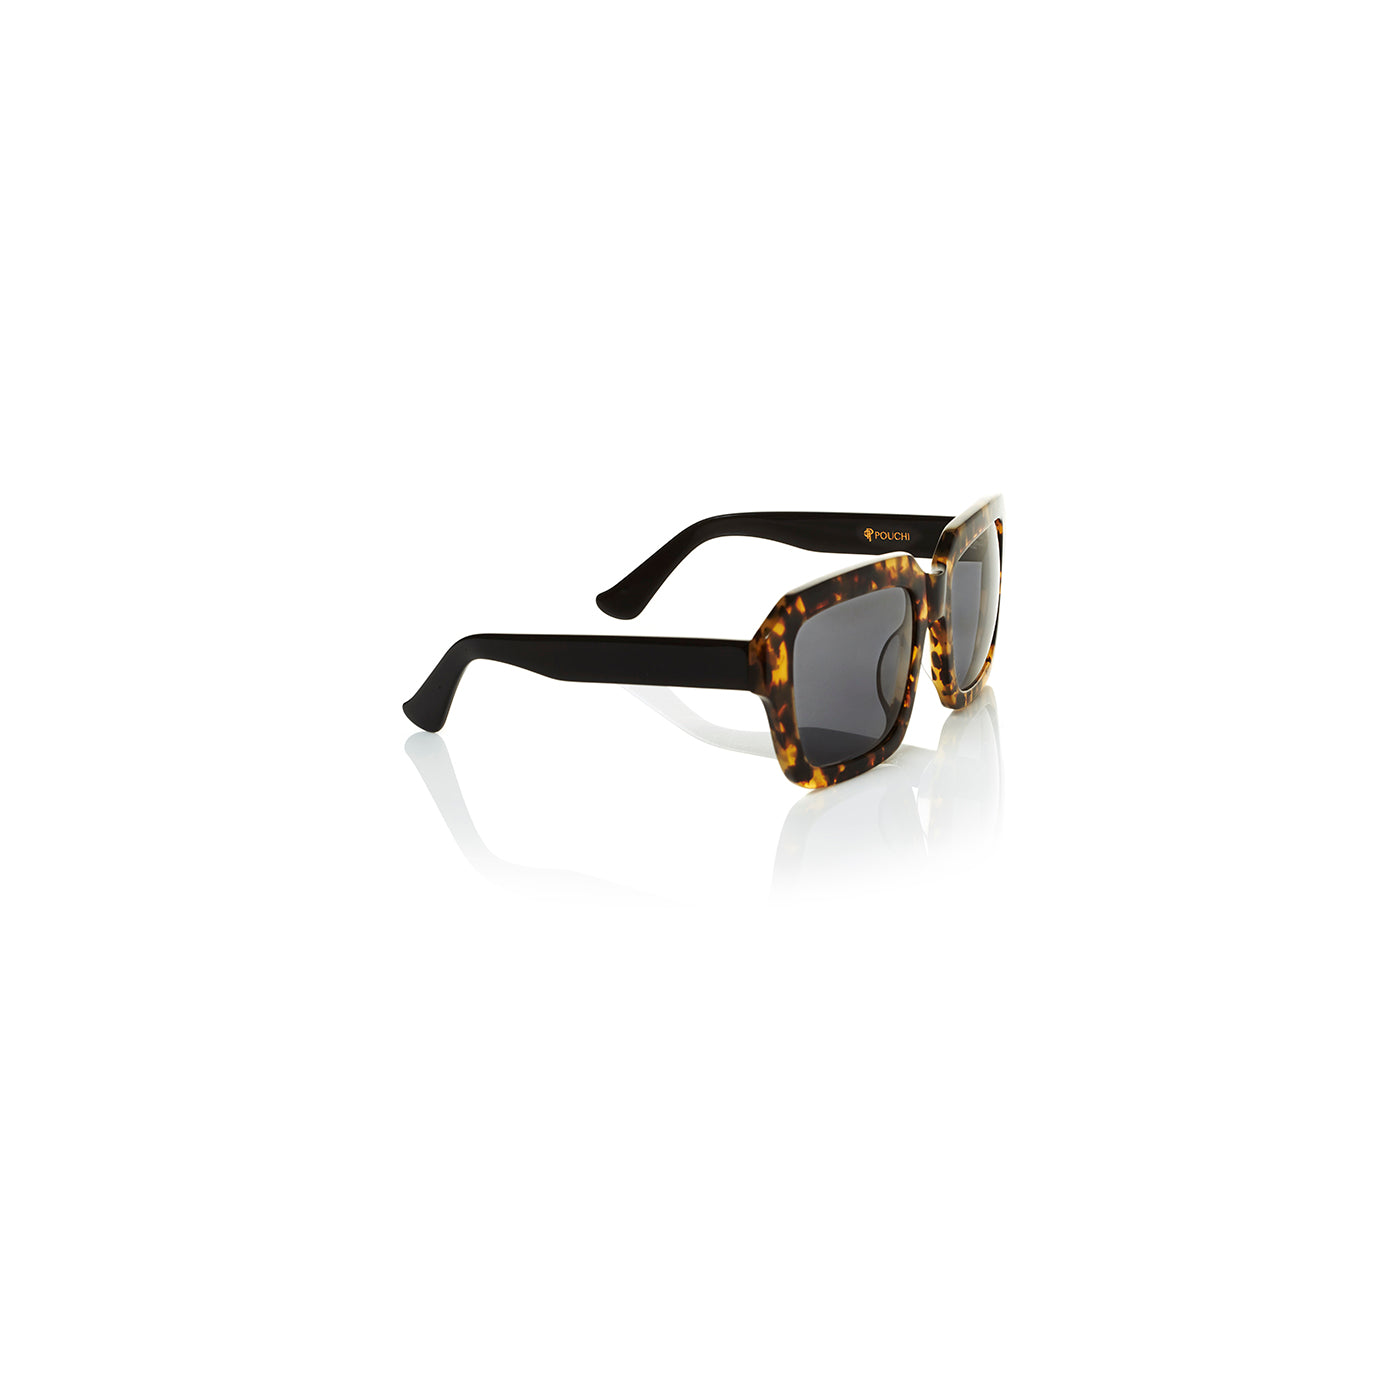 Side image Pouchi sunnies square (sunglass with UVA/UVB)